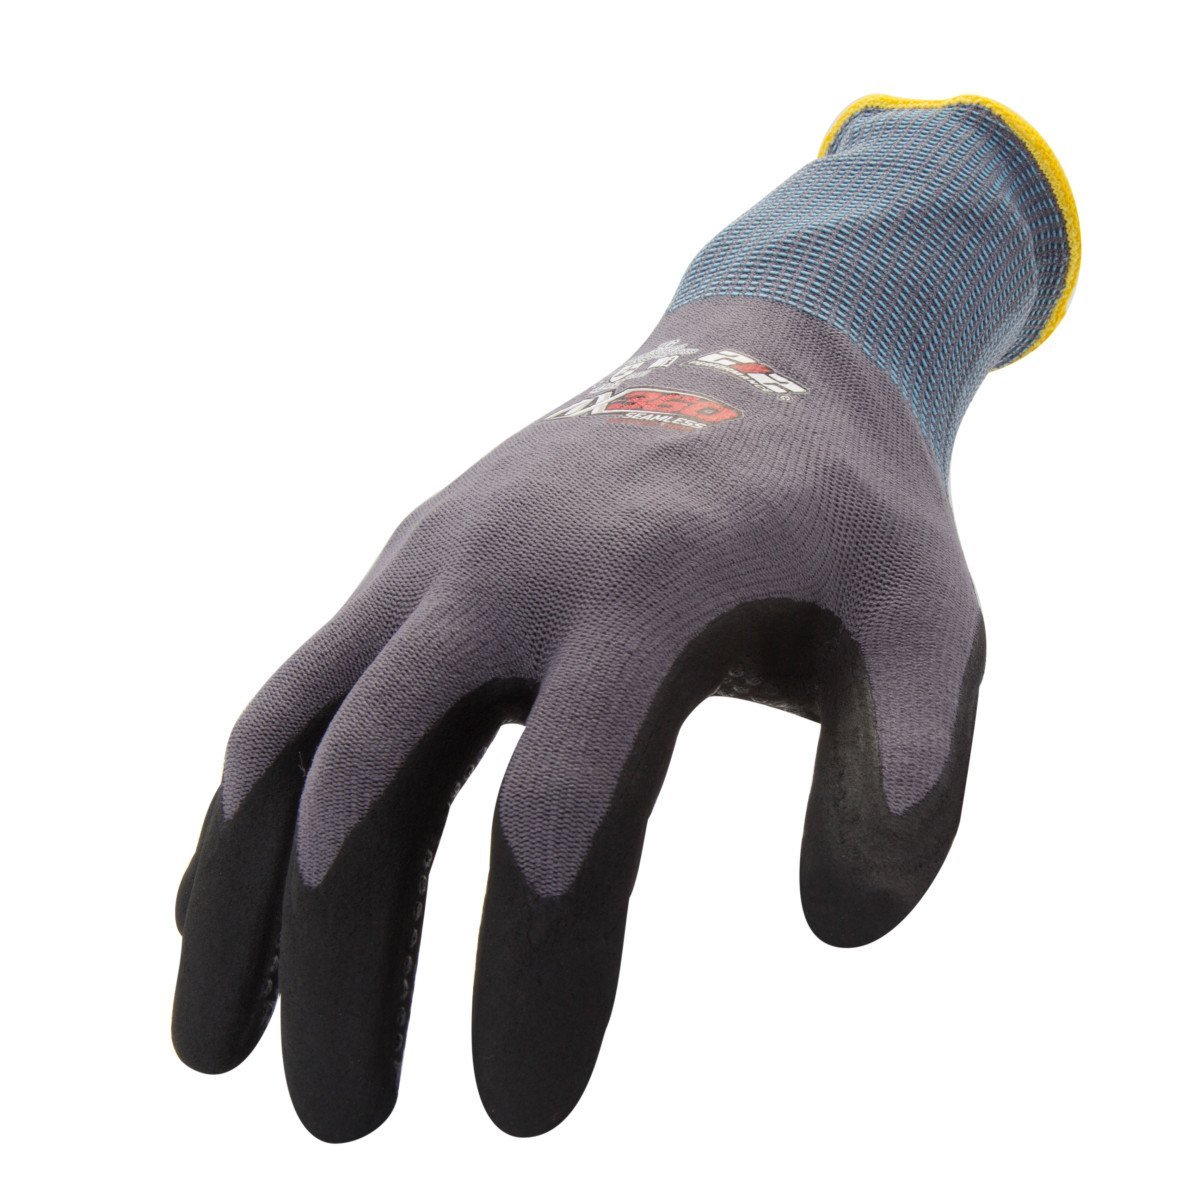 212 Performance Gloves AXDG-16-012PR AX360 Dotted Grip Nitrile-dipped Work Glove, 1-Pair, XX-Large